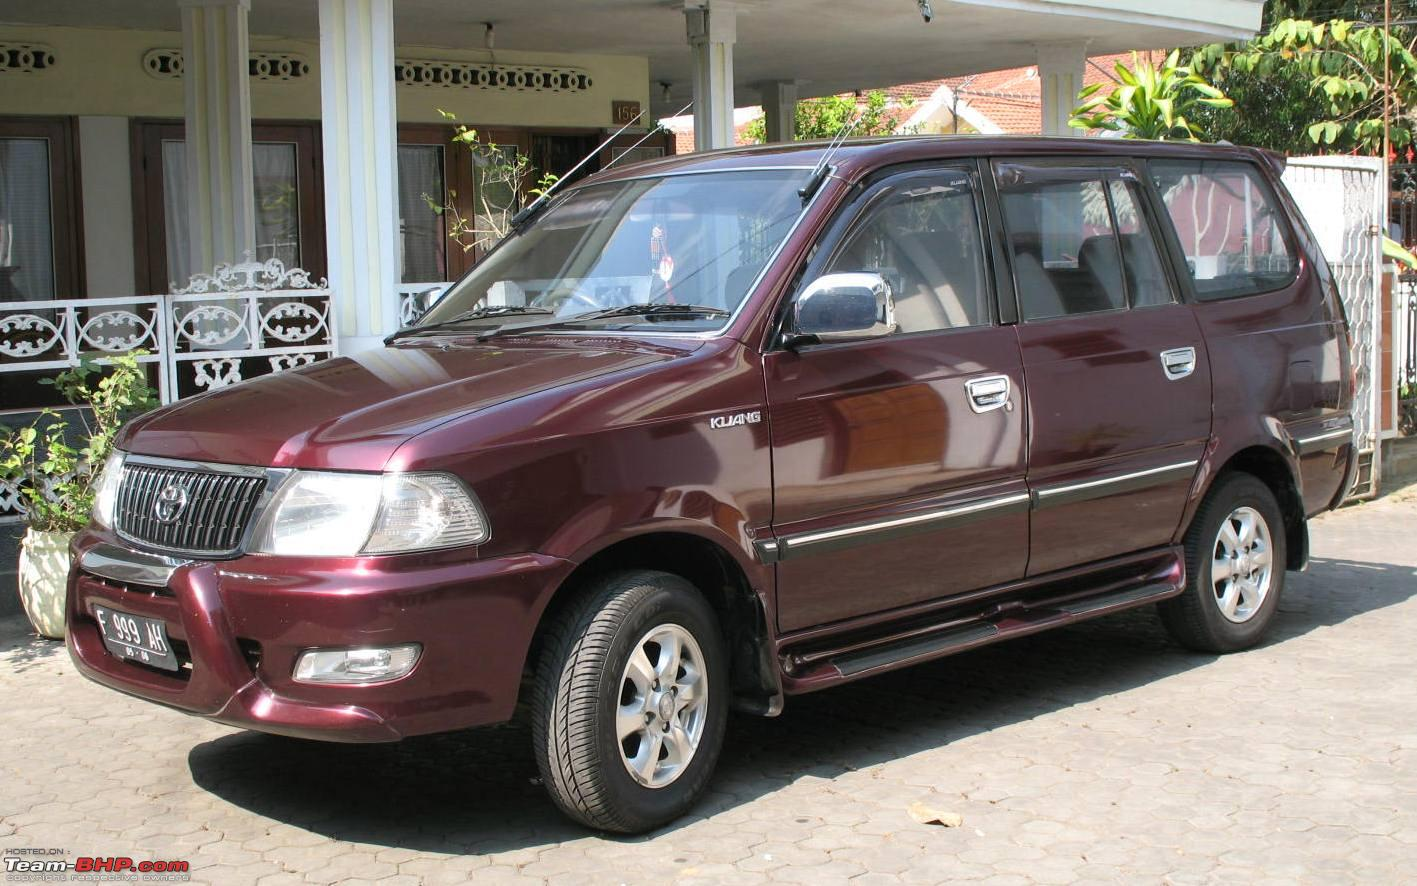 2014 Toyota Innova Facelift Now Launched Page 5 Team Bhp Revo Wiring Diagram Kijang Lgx